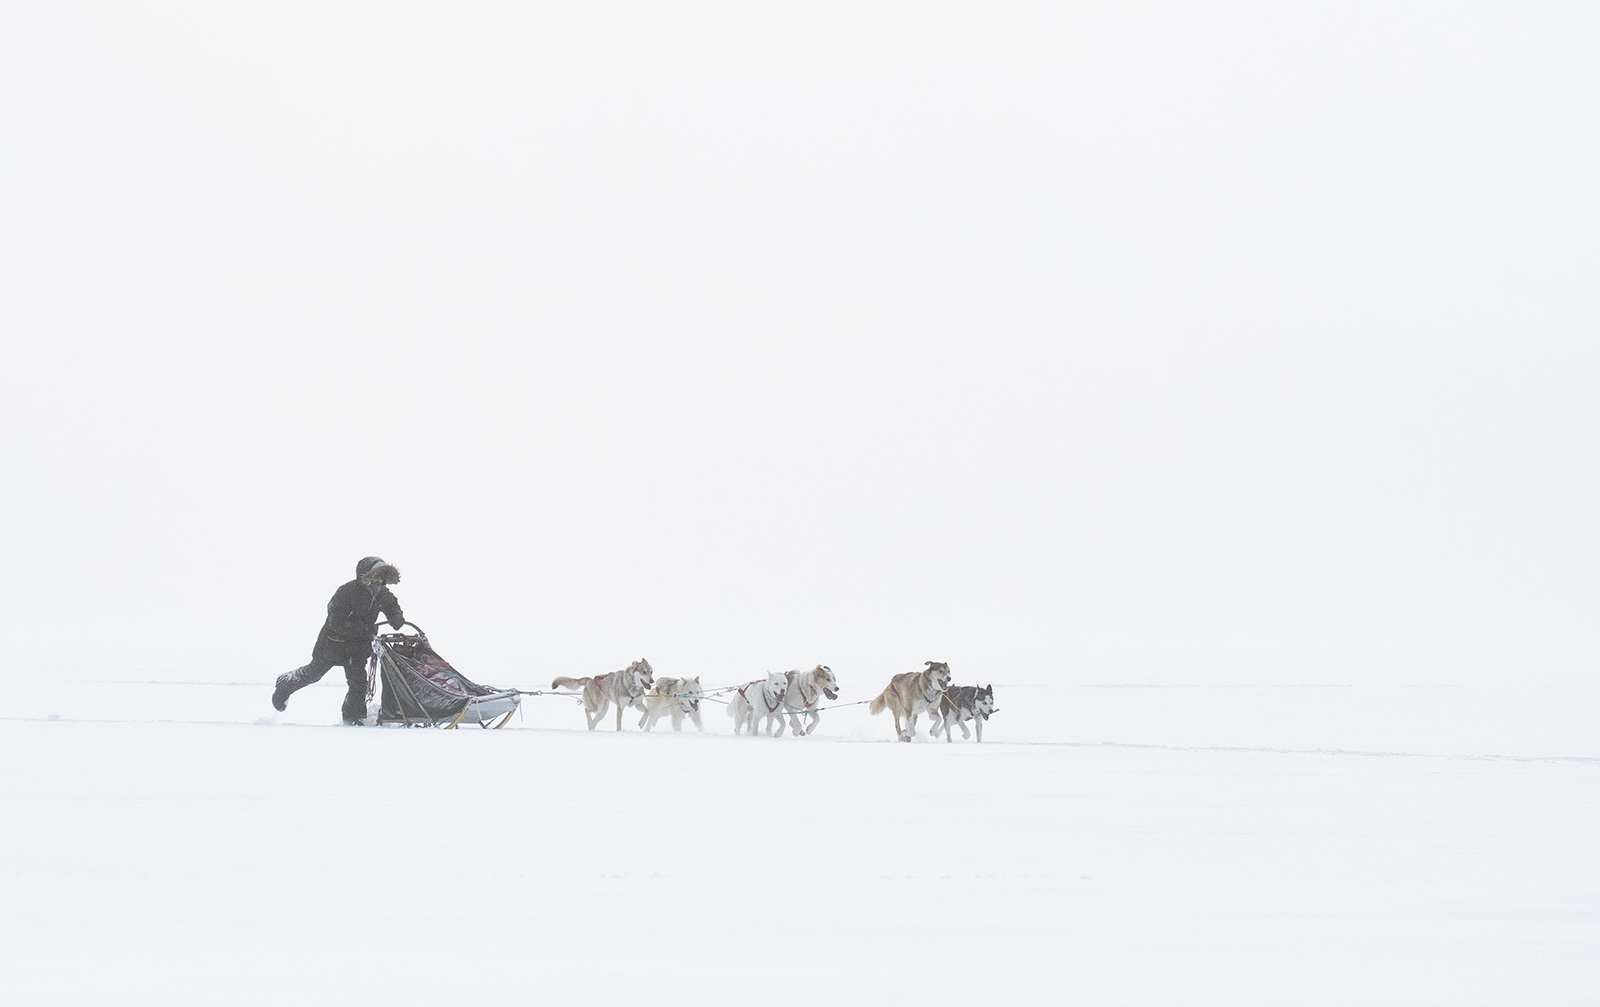 morgan and his dog team coming out of the snow.jpg